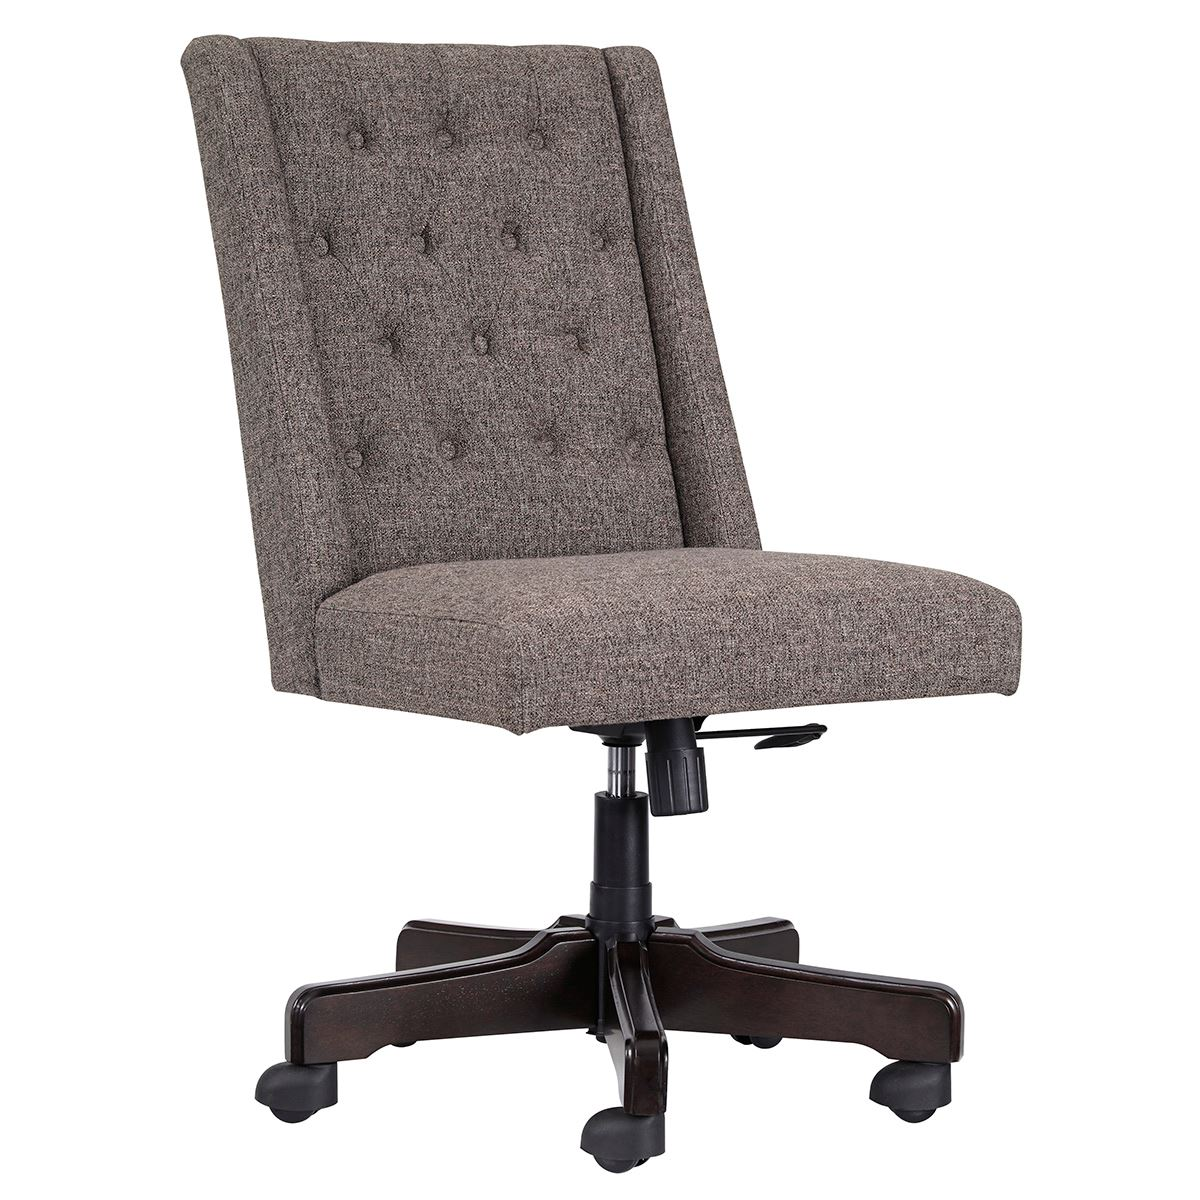 hight resolution of picture of grey tufted desk chair